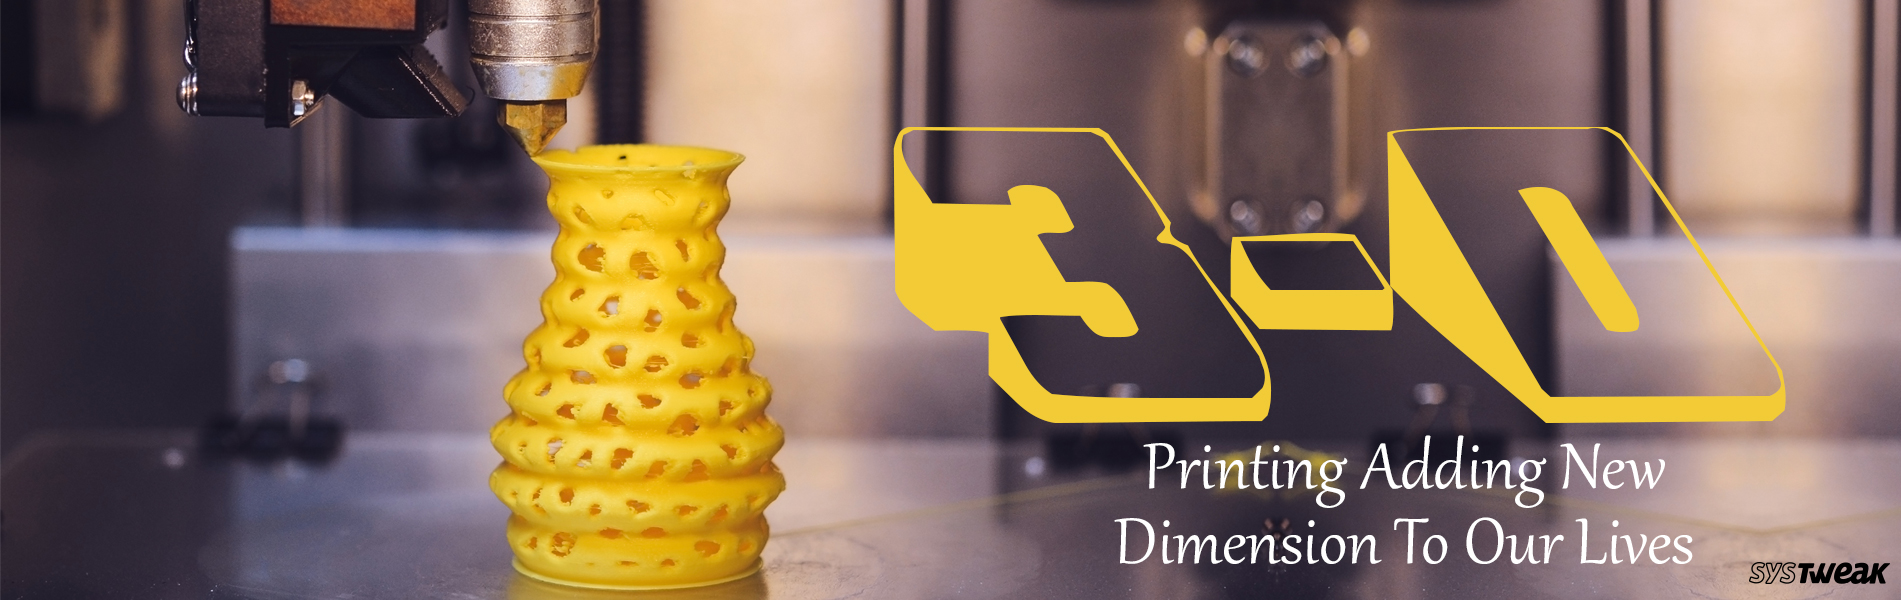 How Will 3D Printing Revolutionize Our Lives?